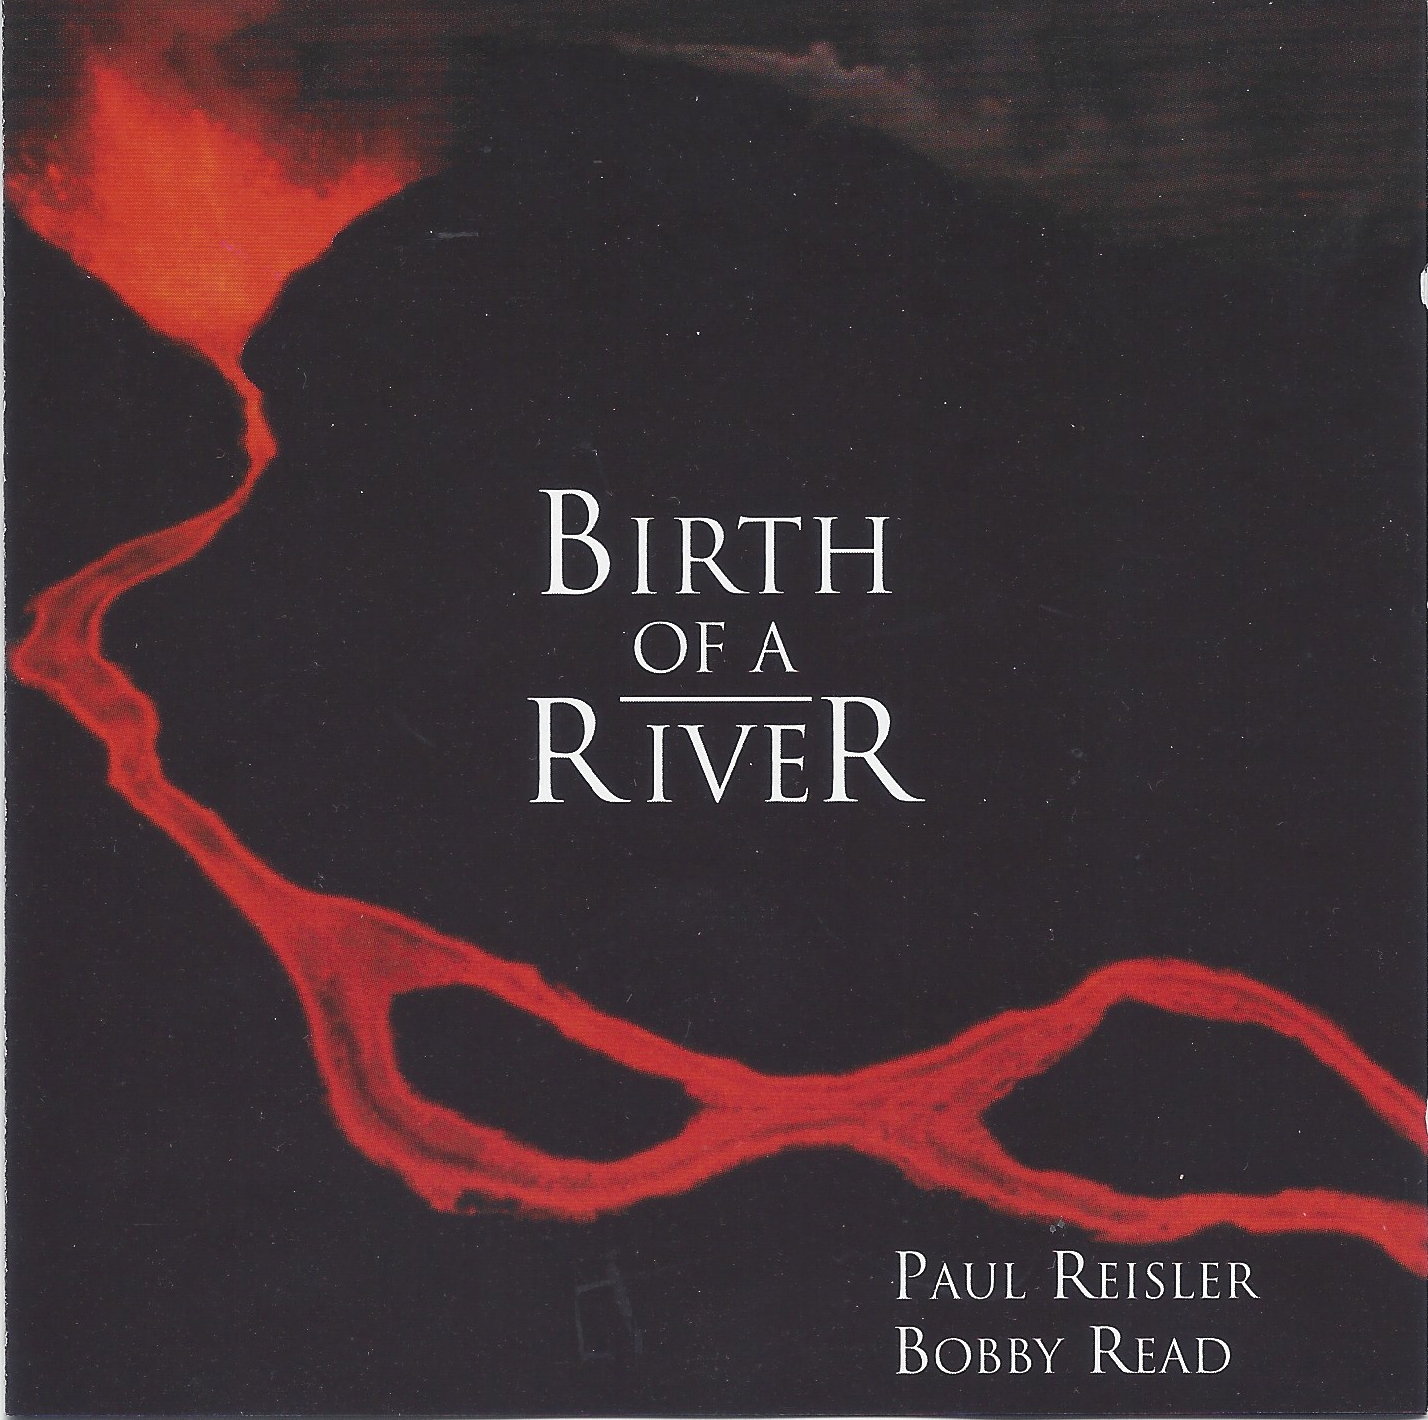 Bobby Read & Paul Reisler - Birth of A River